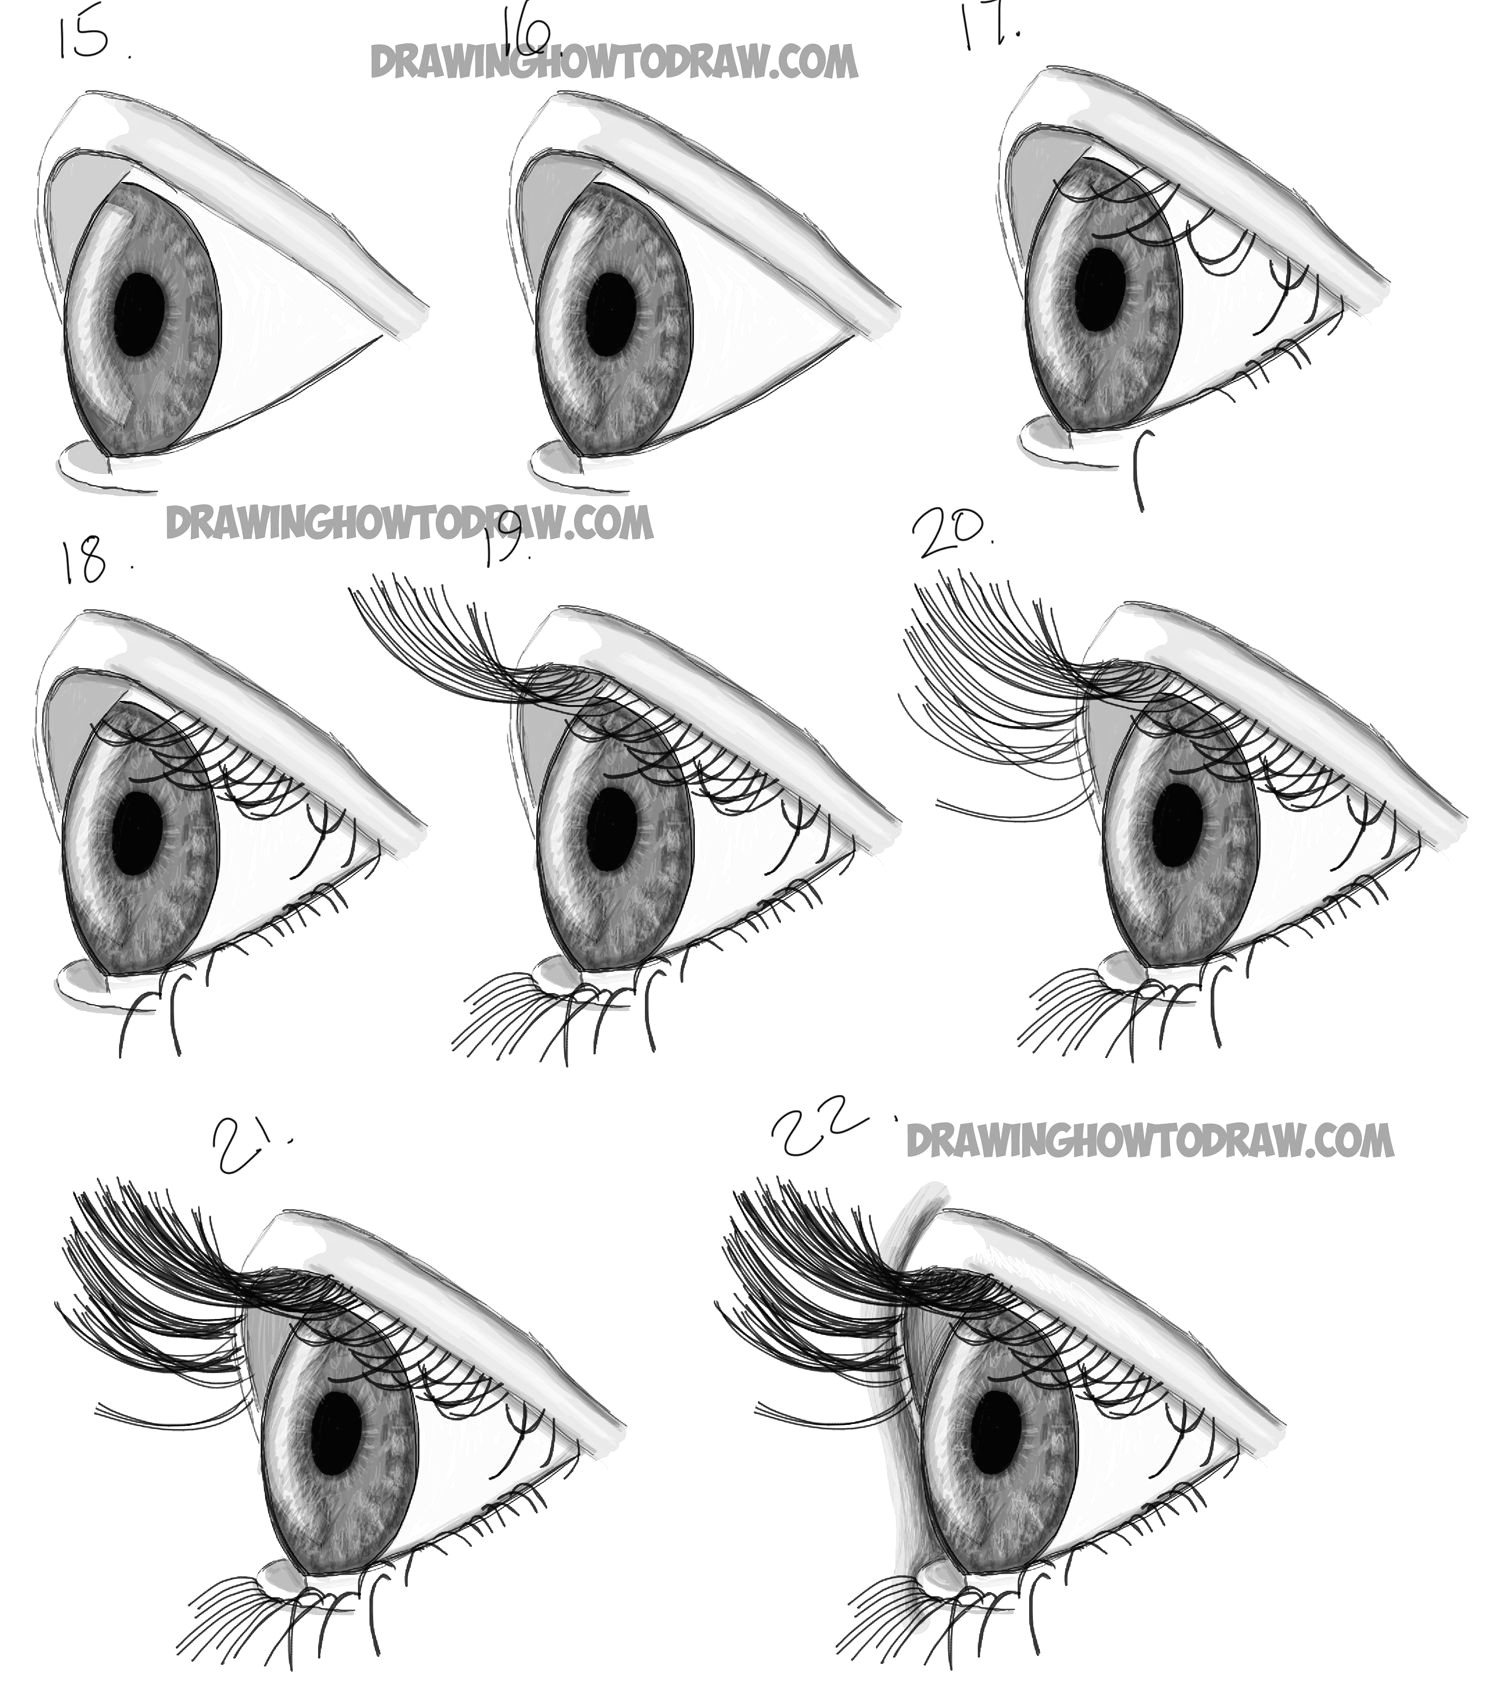 instructions on how to draw an eye all respect to artist i